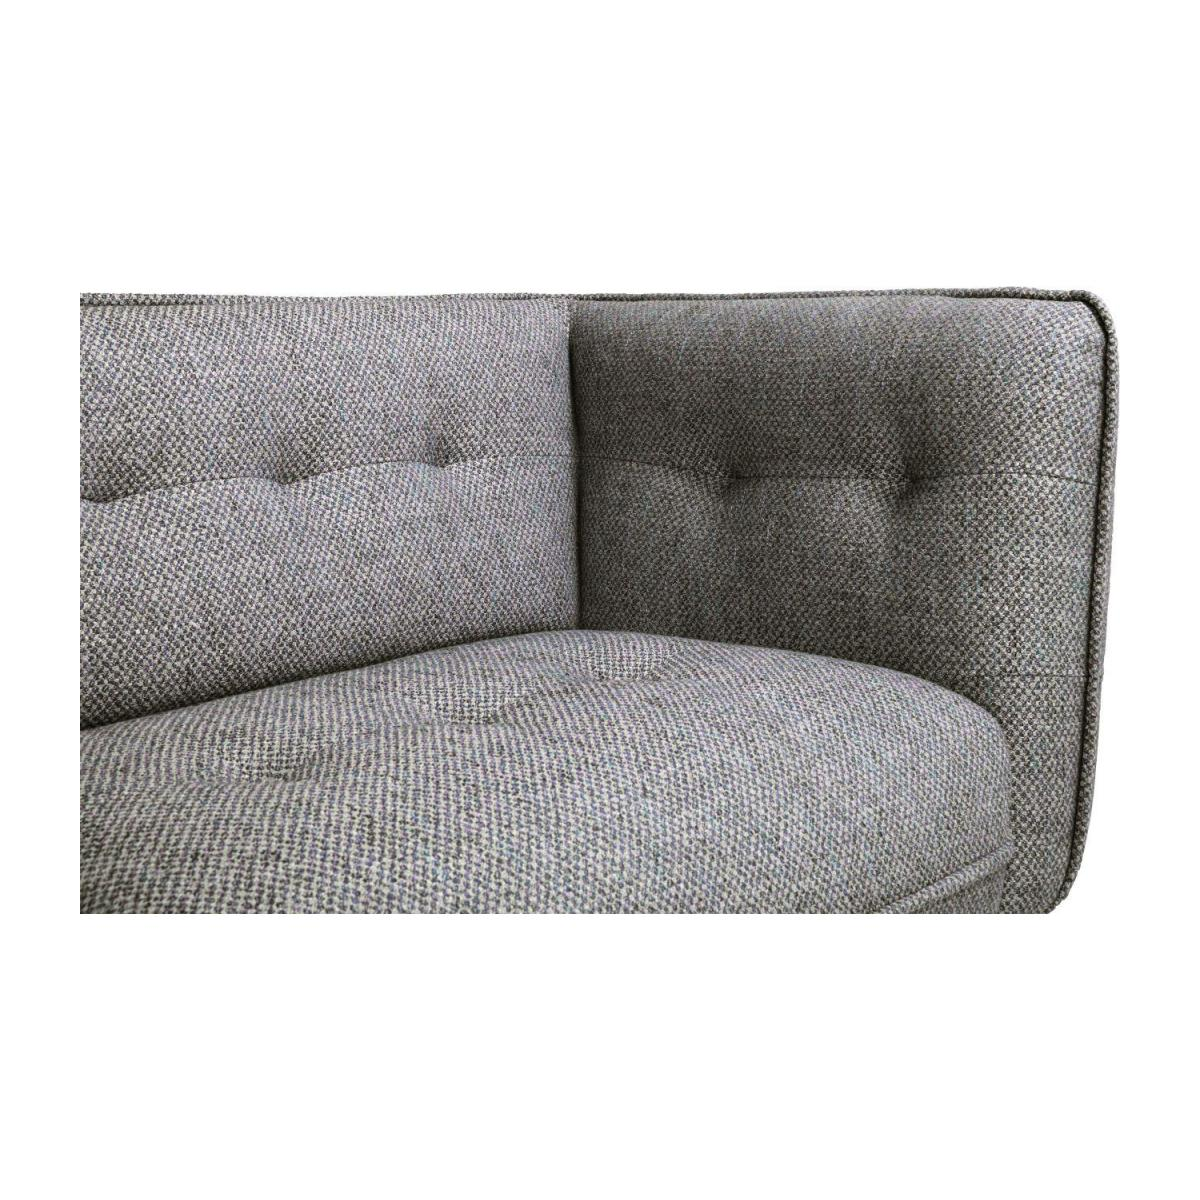 3 seater sofa in Bellagio fabric, night black and dark legs n°7